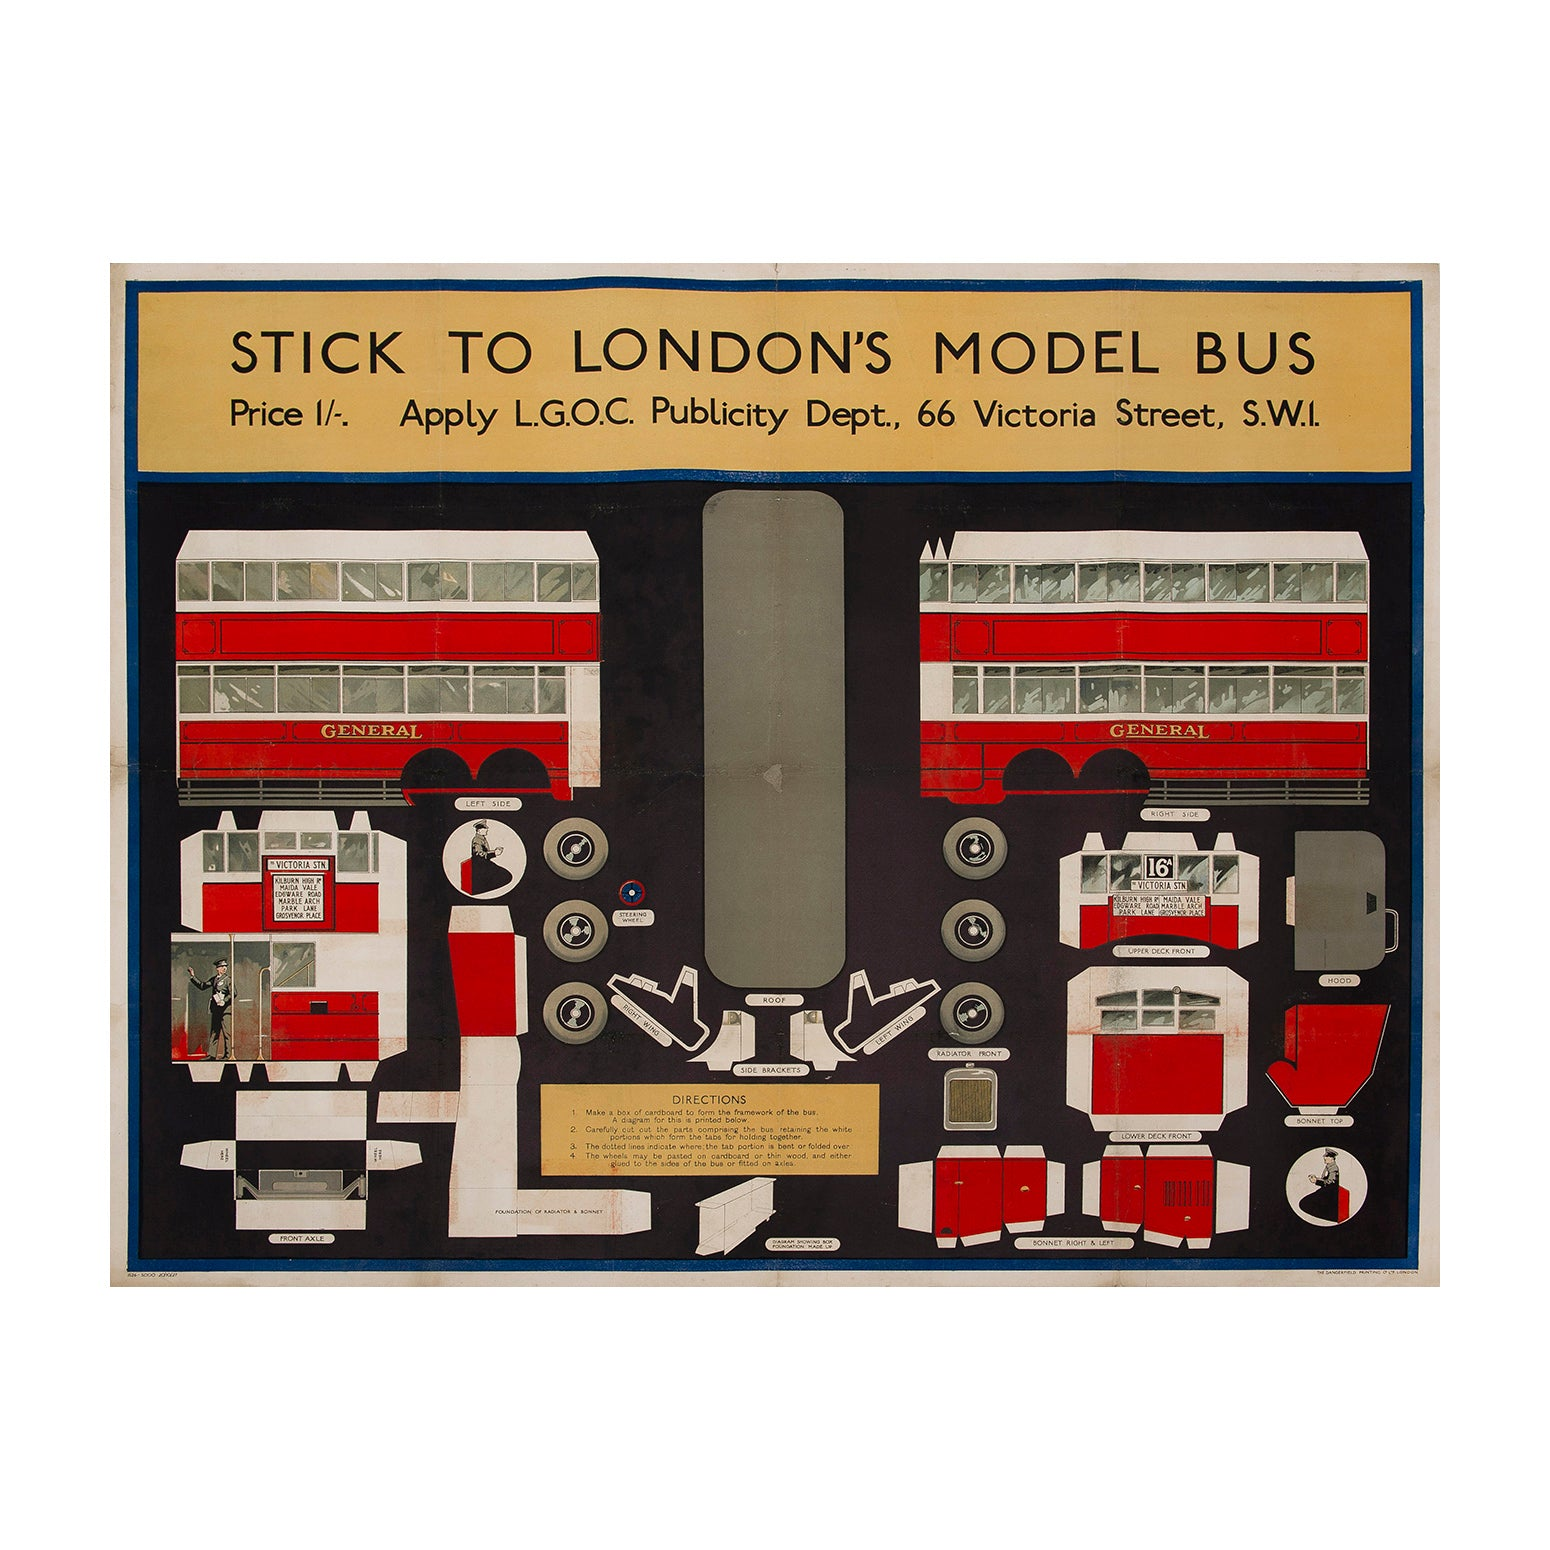 Stick to London's Model Bus